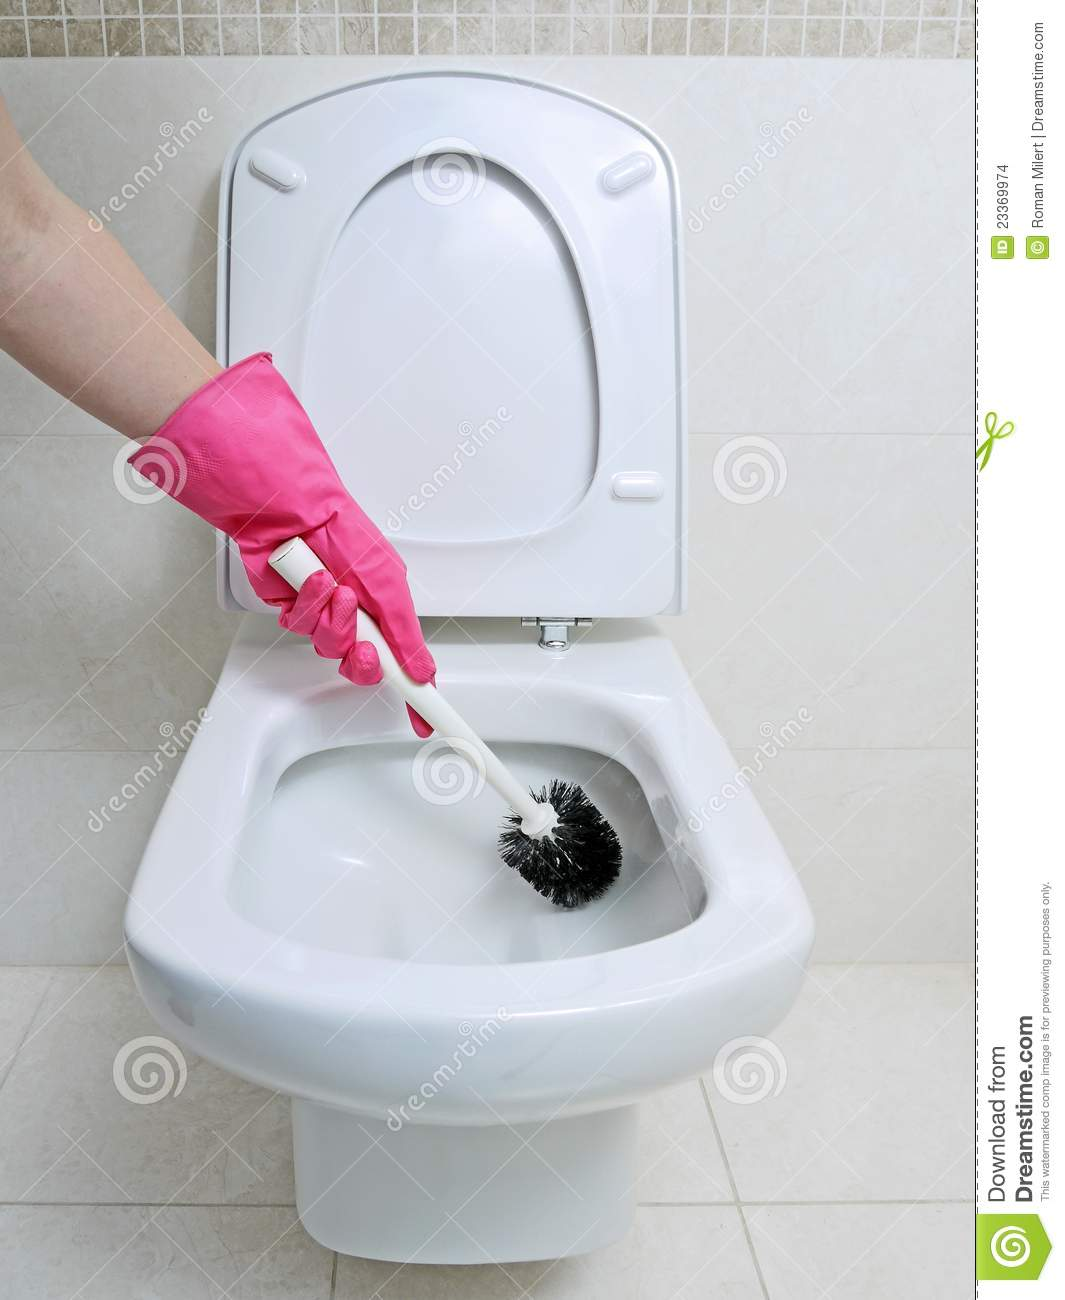 toilet cleaning stock photo image of modern glove. Black Bedroom Furniture Sets. Home Design Ideas